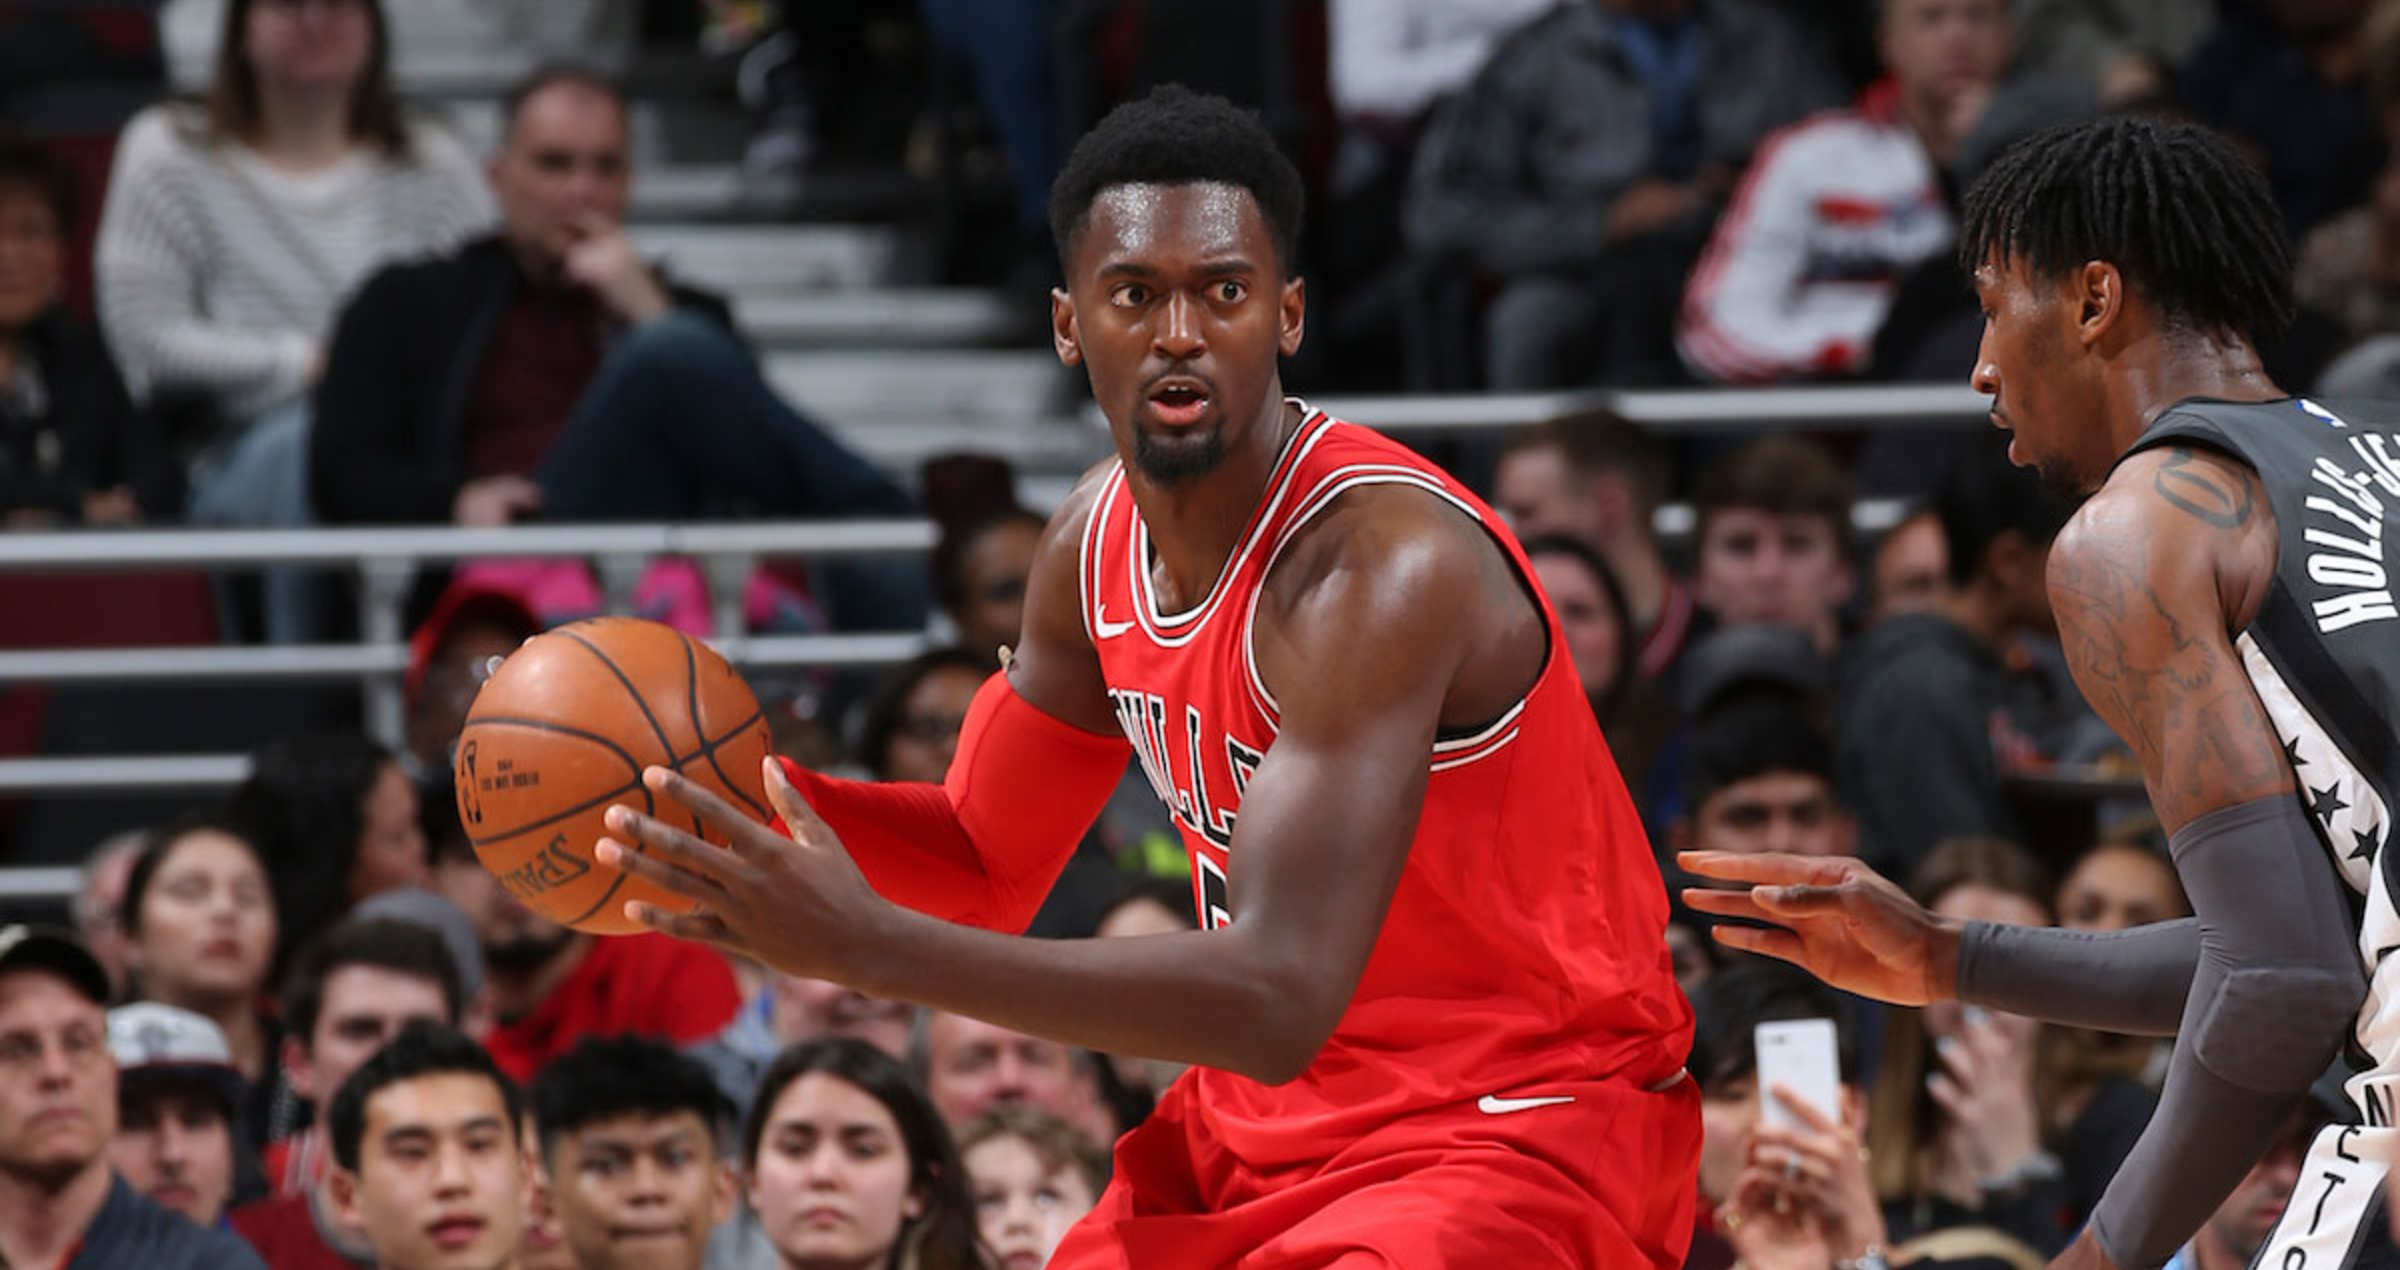 Bobby Portis #5 of the Chicago Bulls handles the ball against the Brooklyn Nets